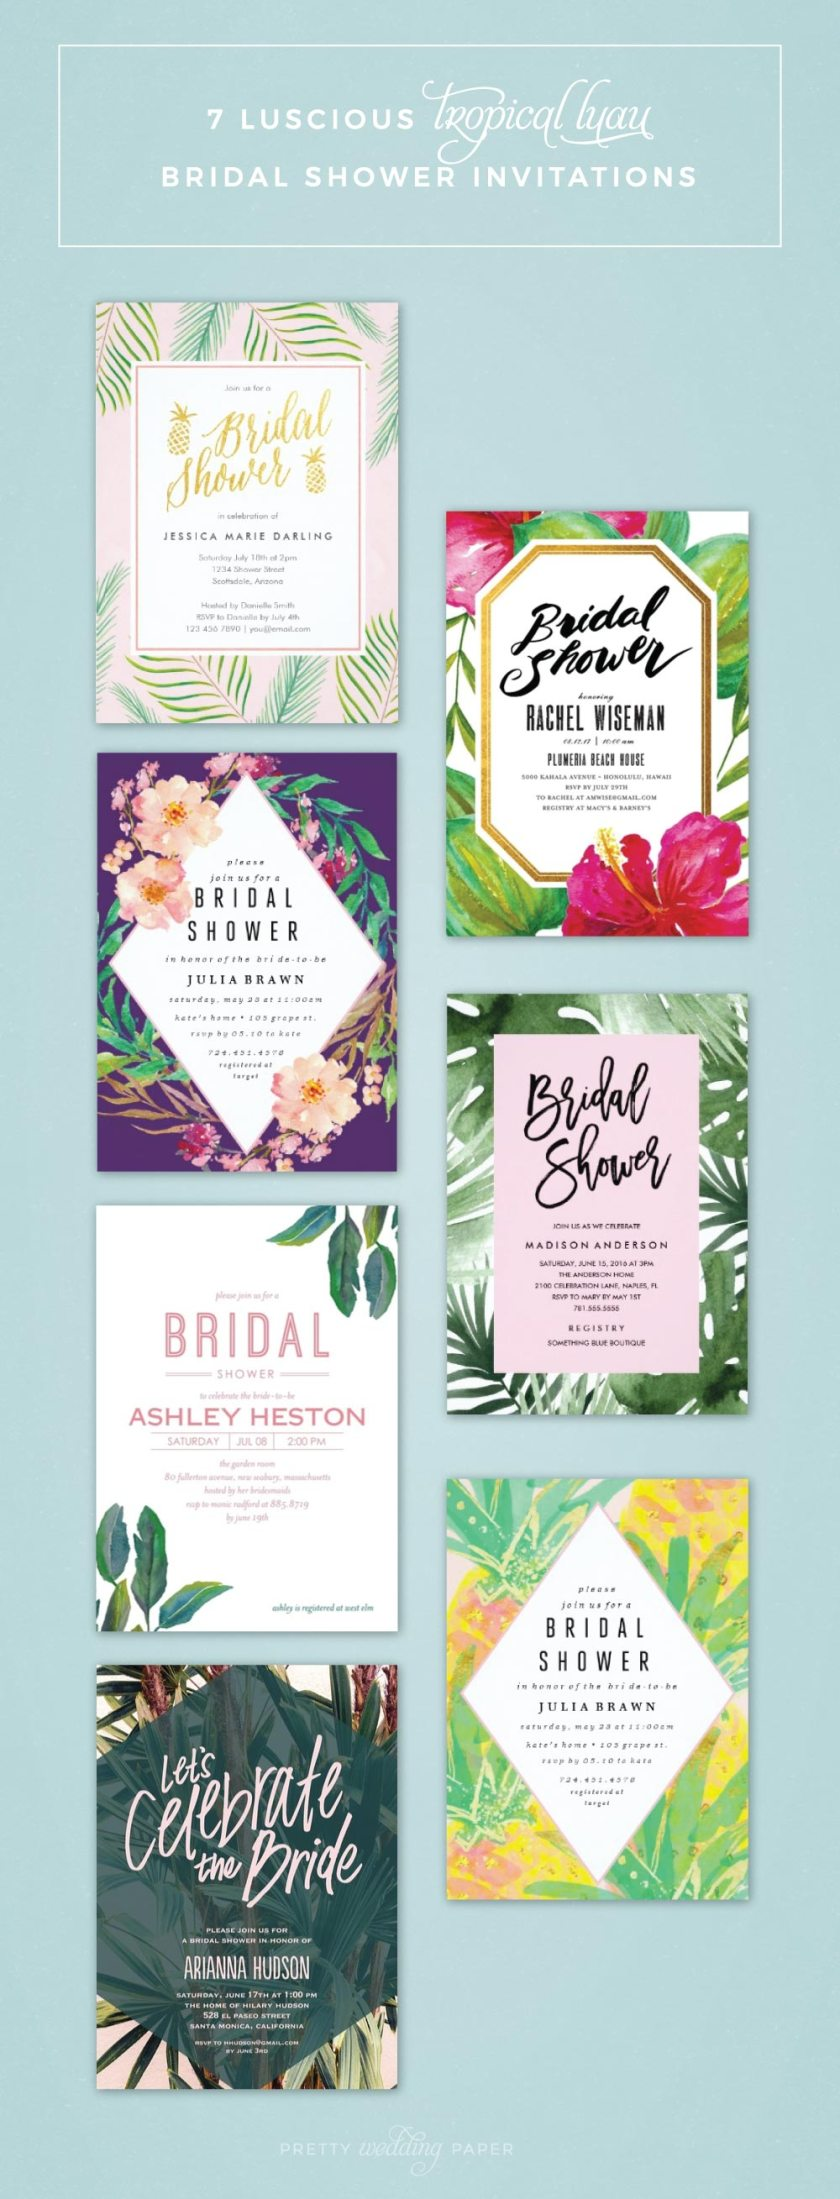 Geous Bridal Shower Invitations For A Tropical Or Luau Party Pretty